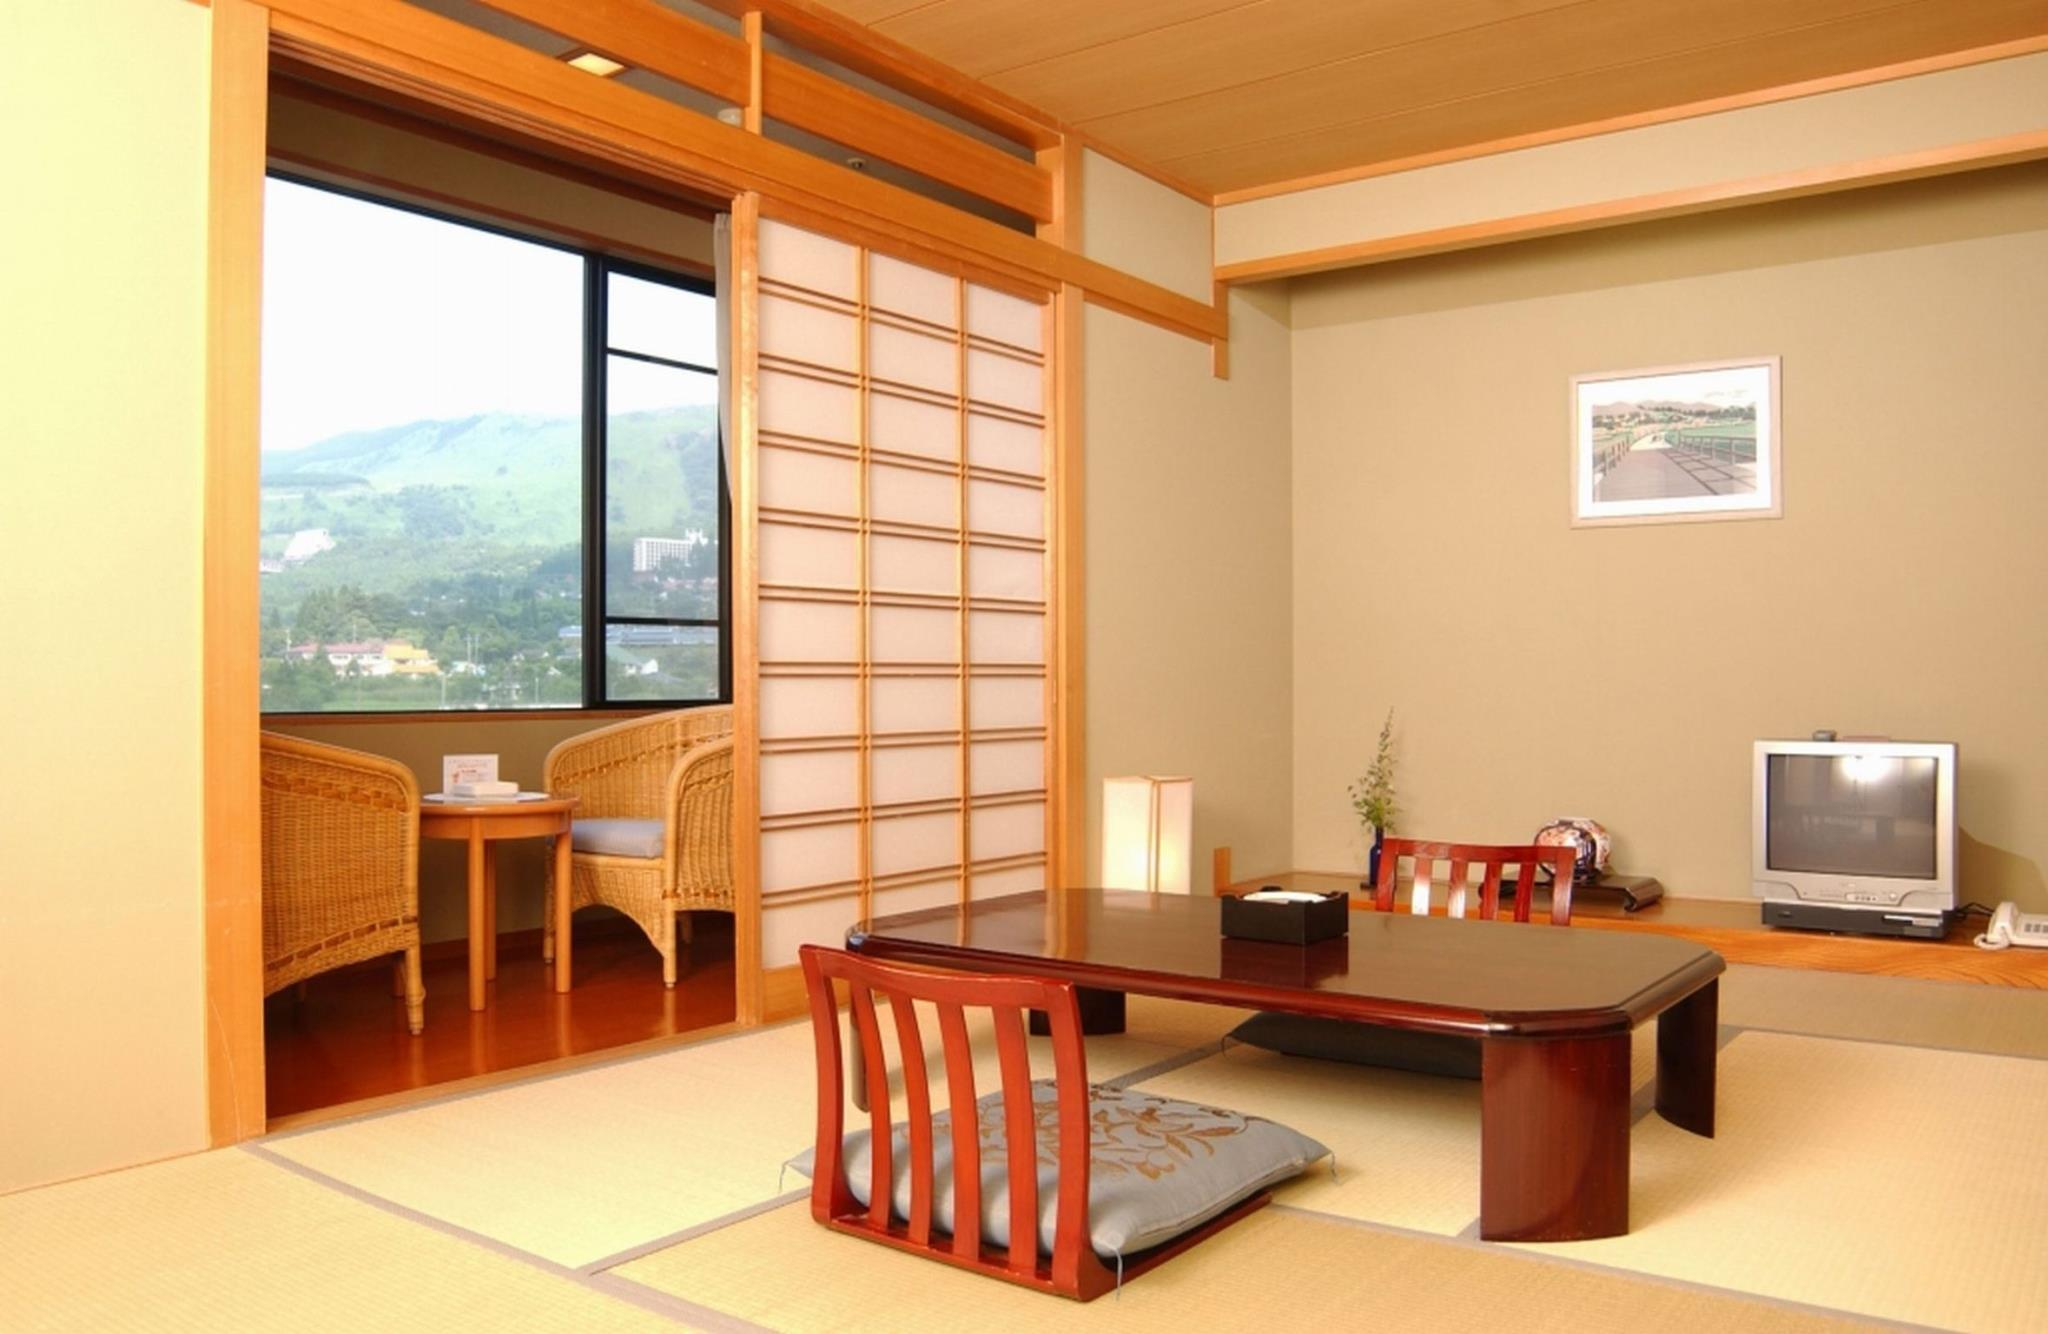 Mount Yufu View Japanese Style Room